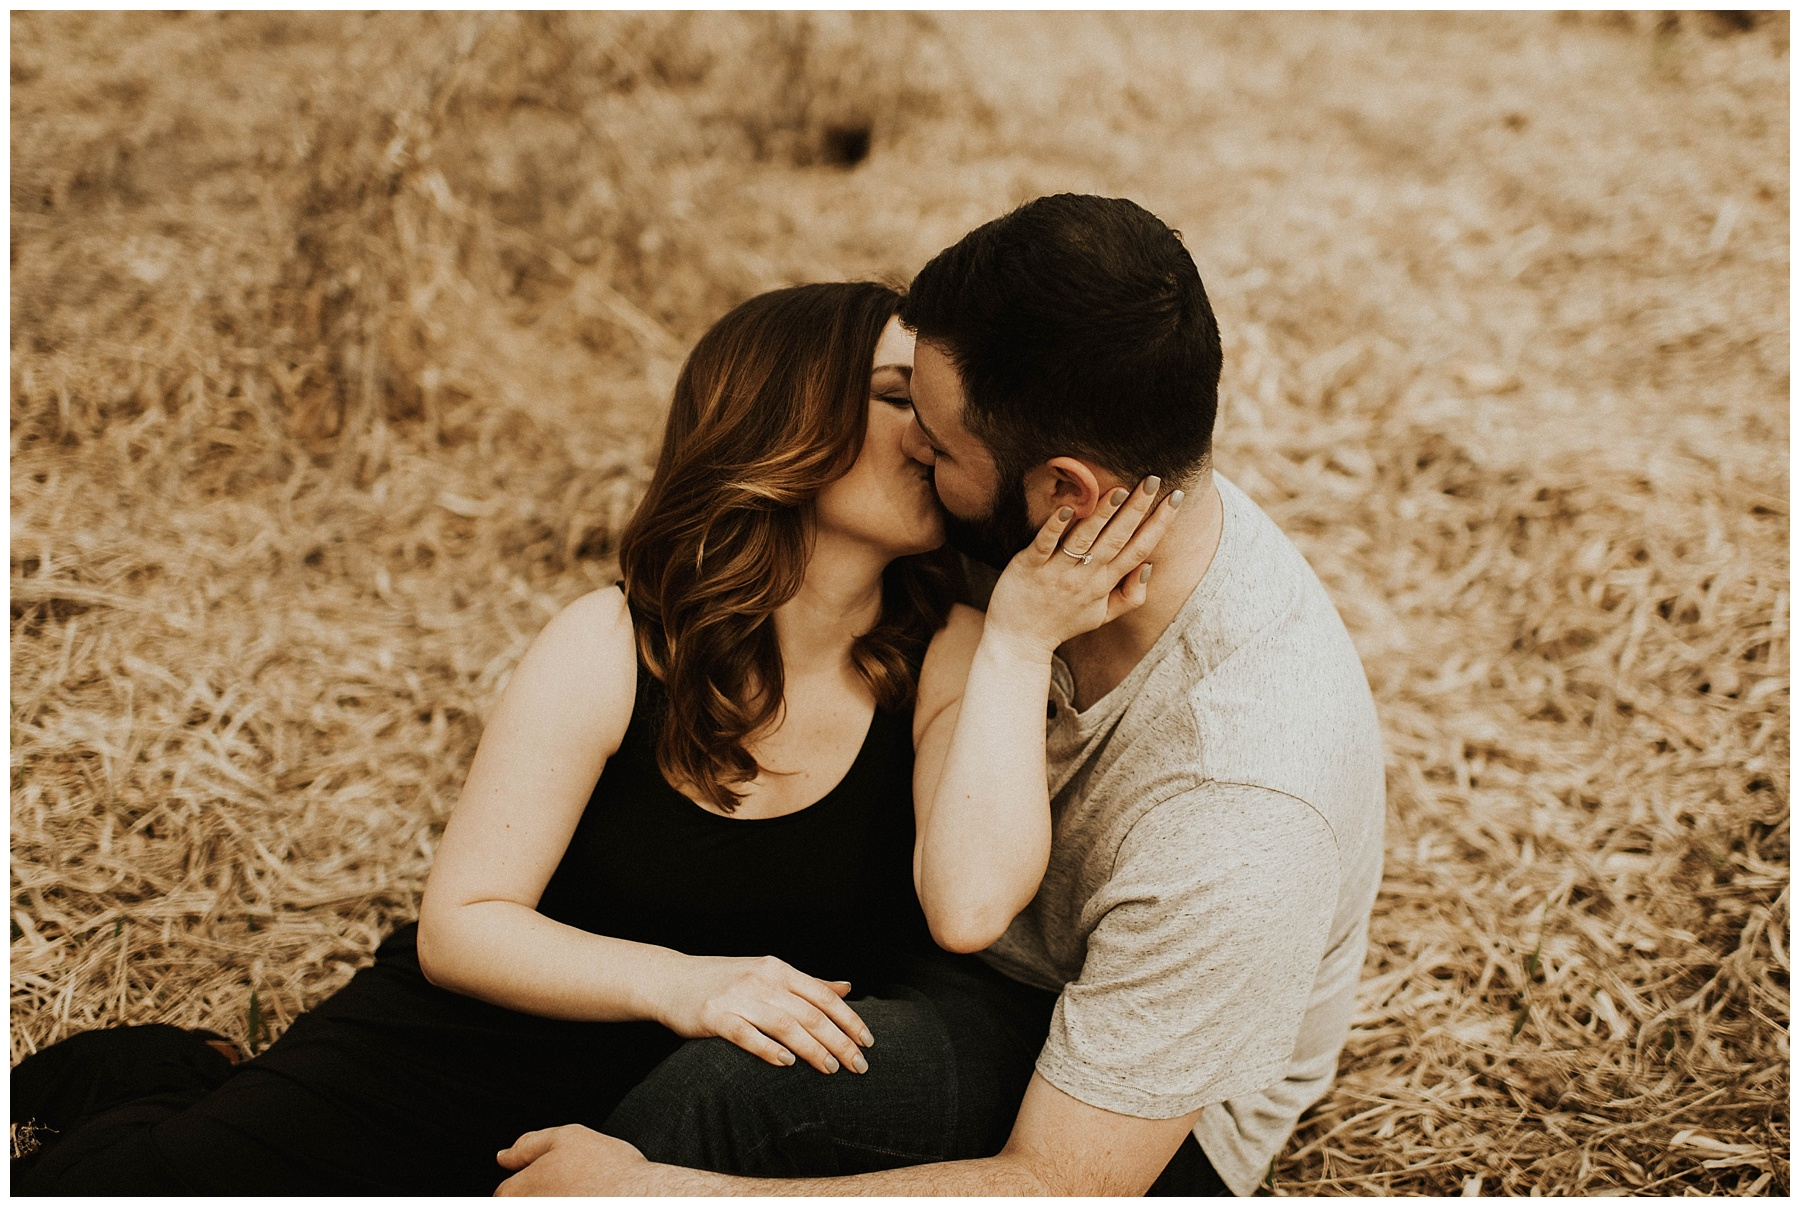 Charlie + Tiffany    Engagements in the woods – Lauren F.otography 0be5d486fca0